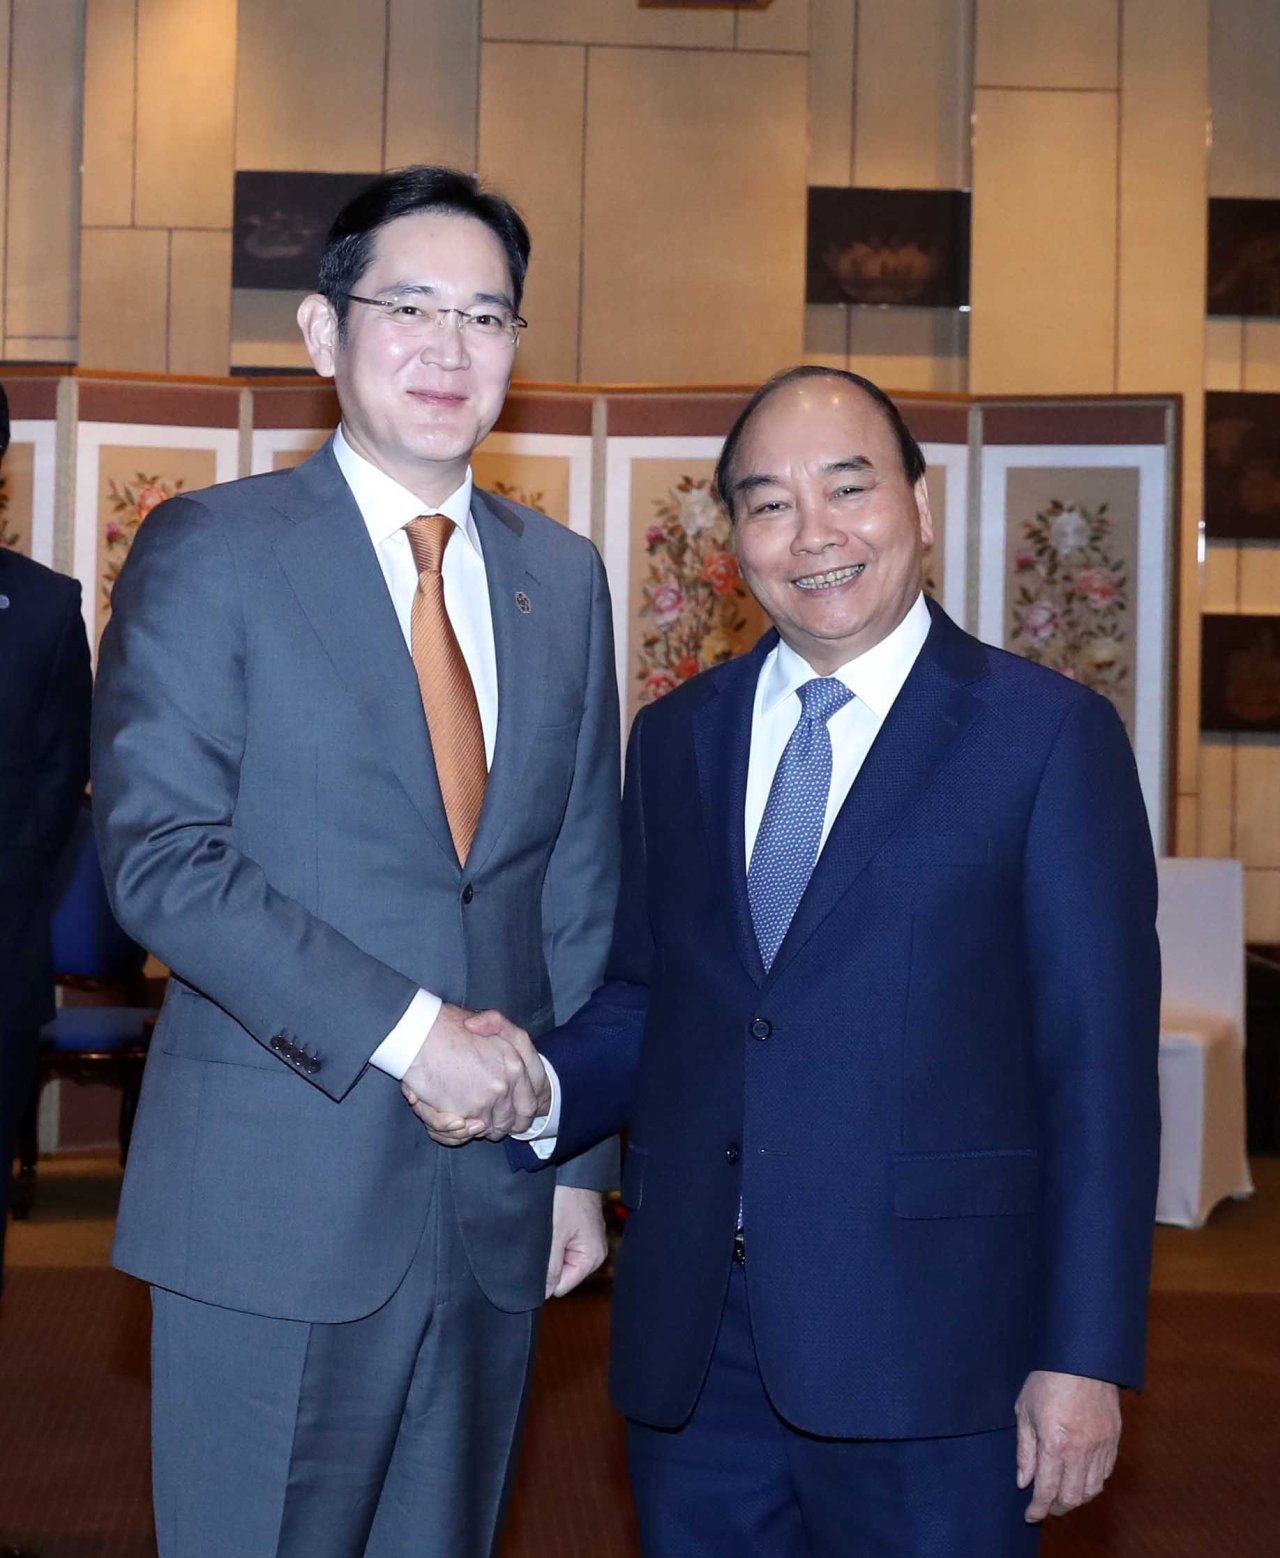 Samsung Electronics Vice Chairman Lee Jae-yong (left) and Vietnamese Prime Minister Nguyen Xuan Phuc hold hands after a meeting at the Grand Hyatt Seoul on Thursday. (Yonhap)